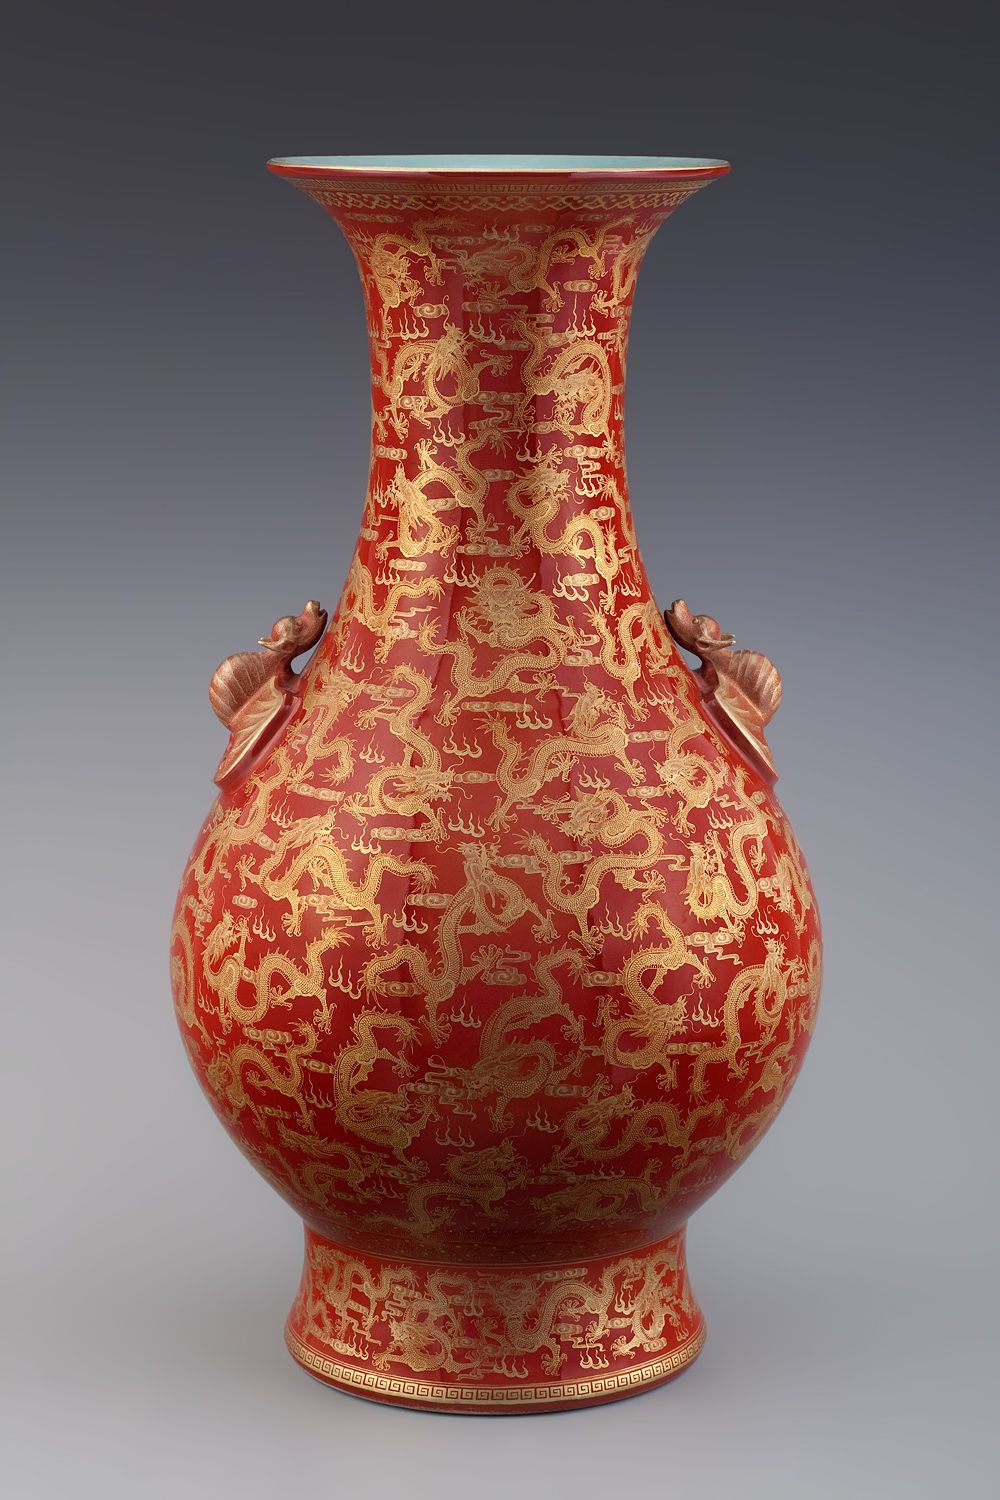 Qianlong Vase Value Of Pin by I€ On Ancient China Pinterest Ancient China and Pottery Throughout 8ecc0db878825d66fb41bfba7a47df2f